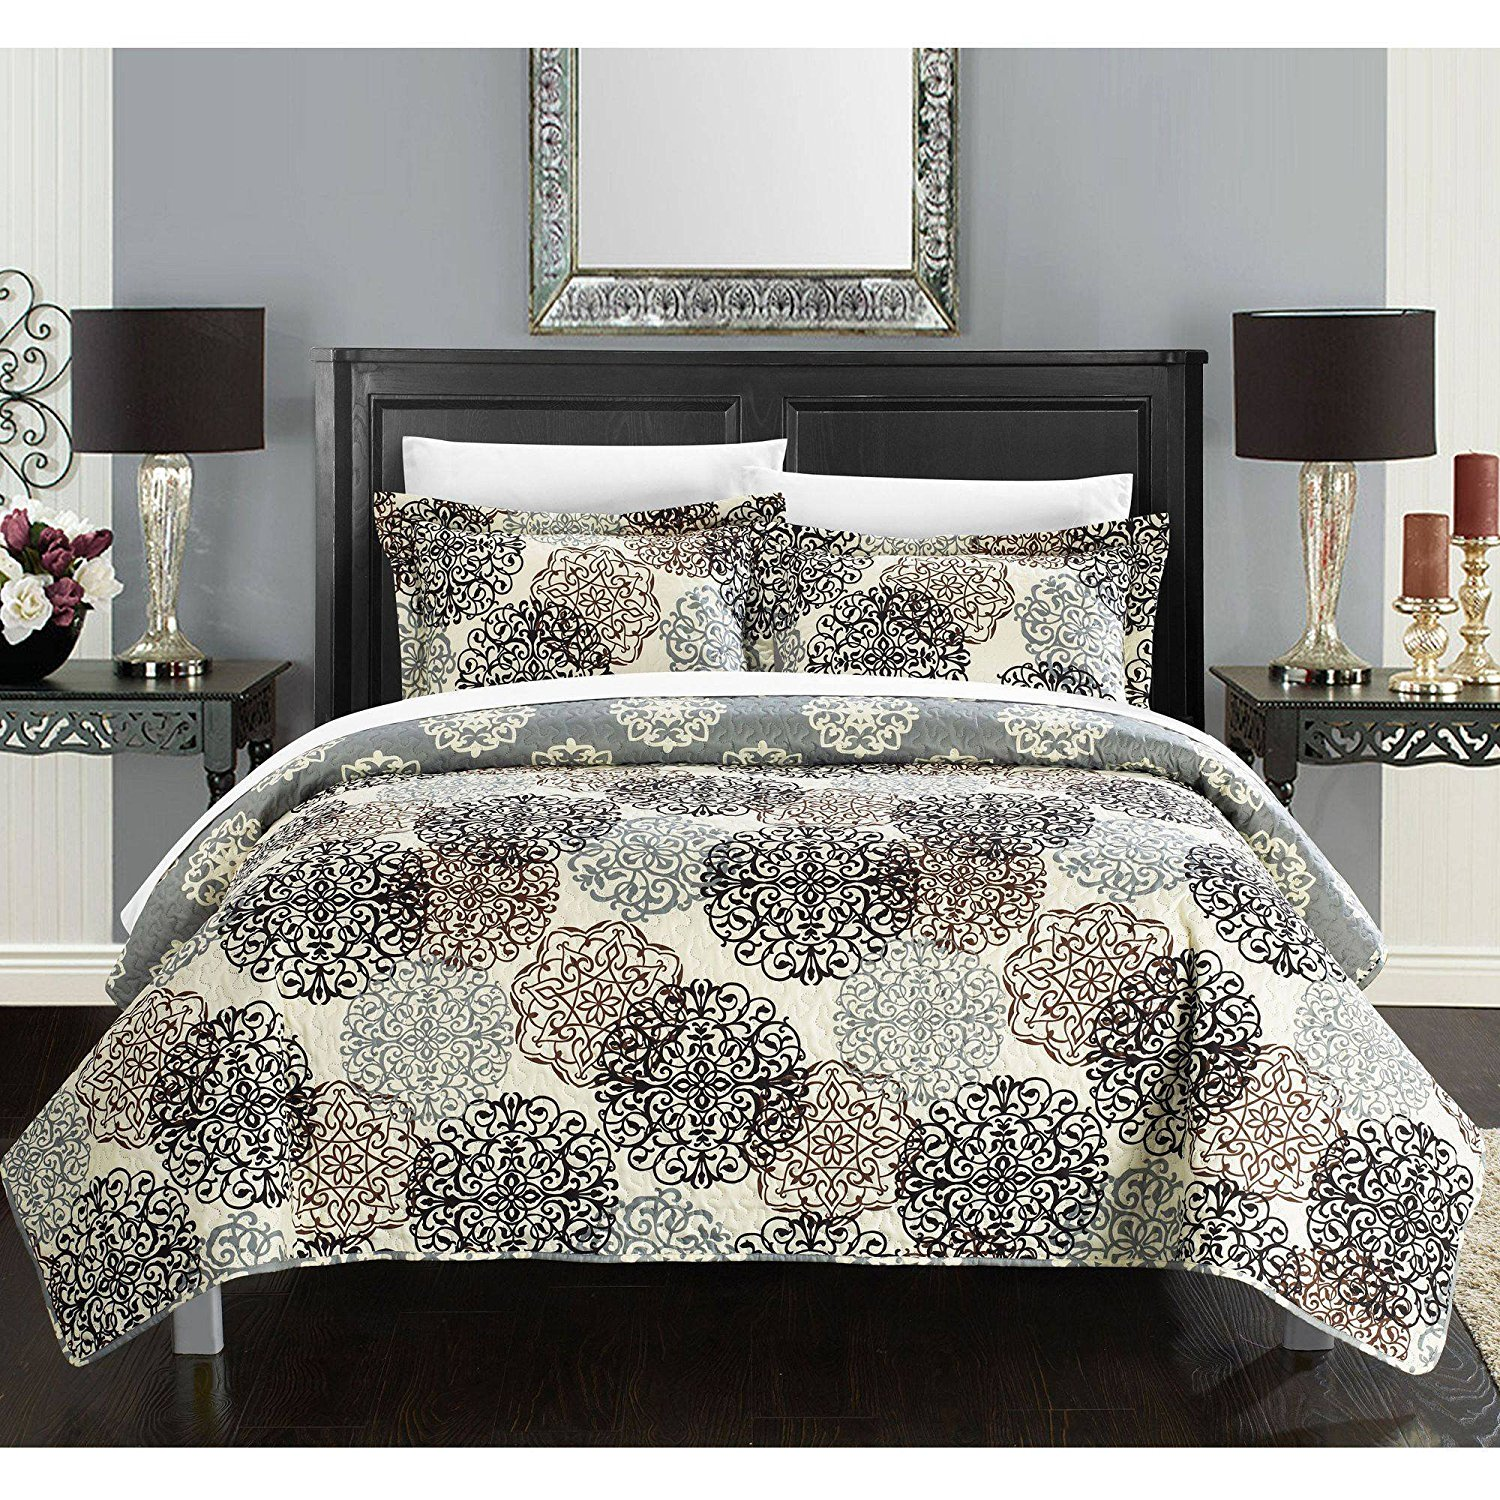 3 Piece Beige Off White Jacquard Motif Floral Quilt Set King, Black Grey Brown Medallion Oriental Boho Geometric Abstract Flower Adult Bedding Master Bedroom, Reversible Mandala Printed, Microfibre